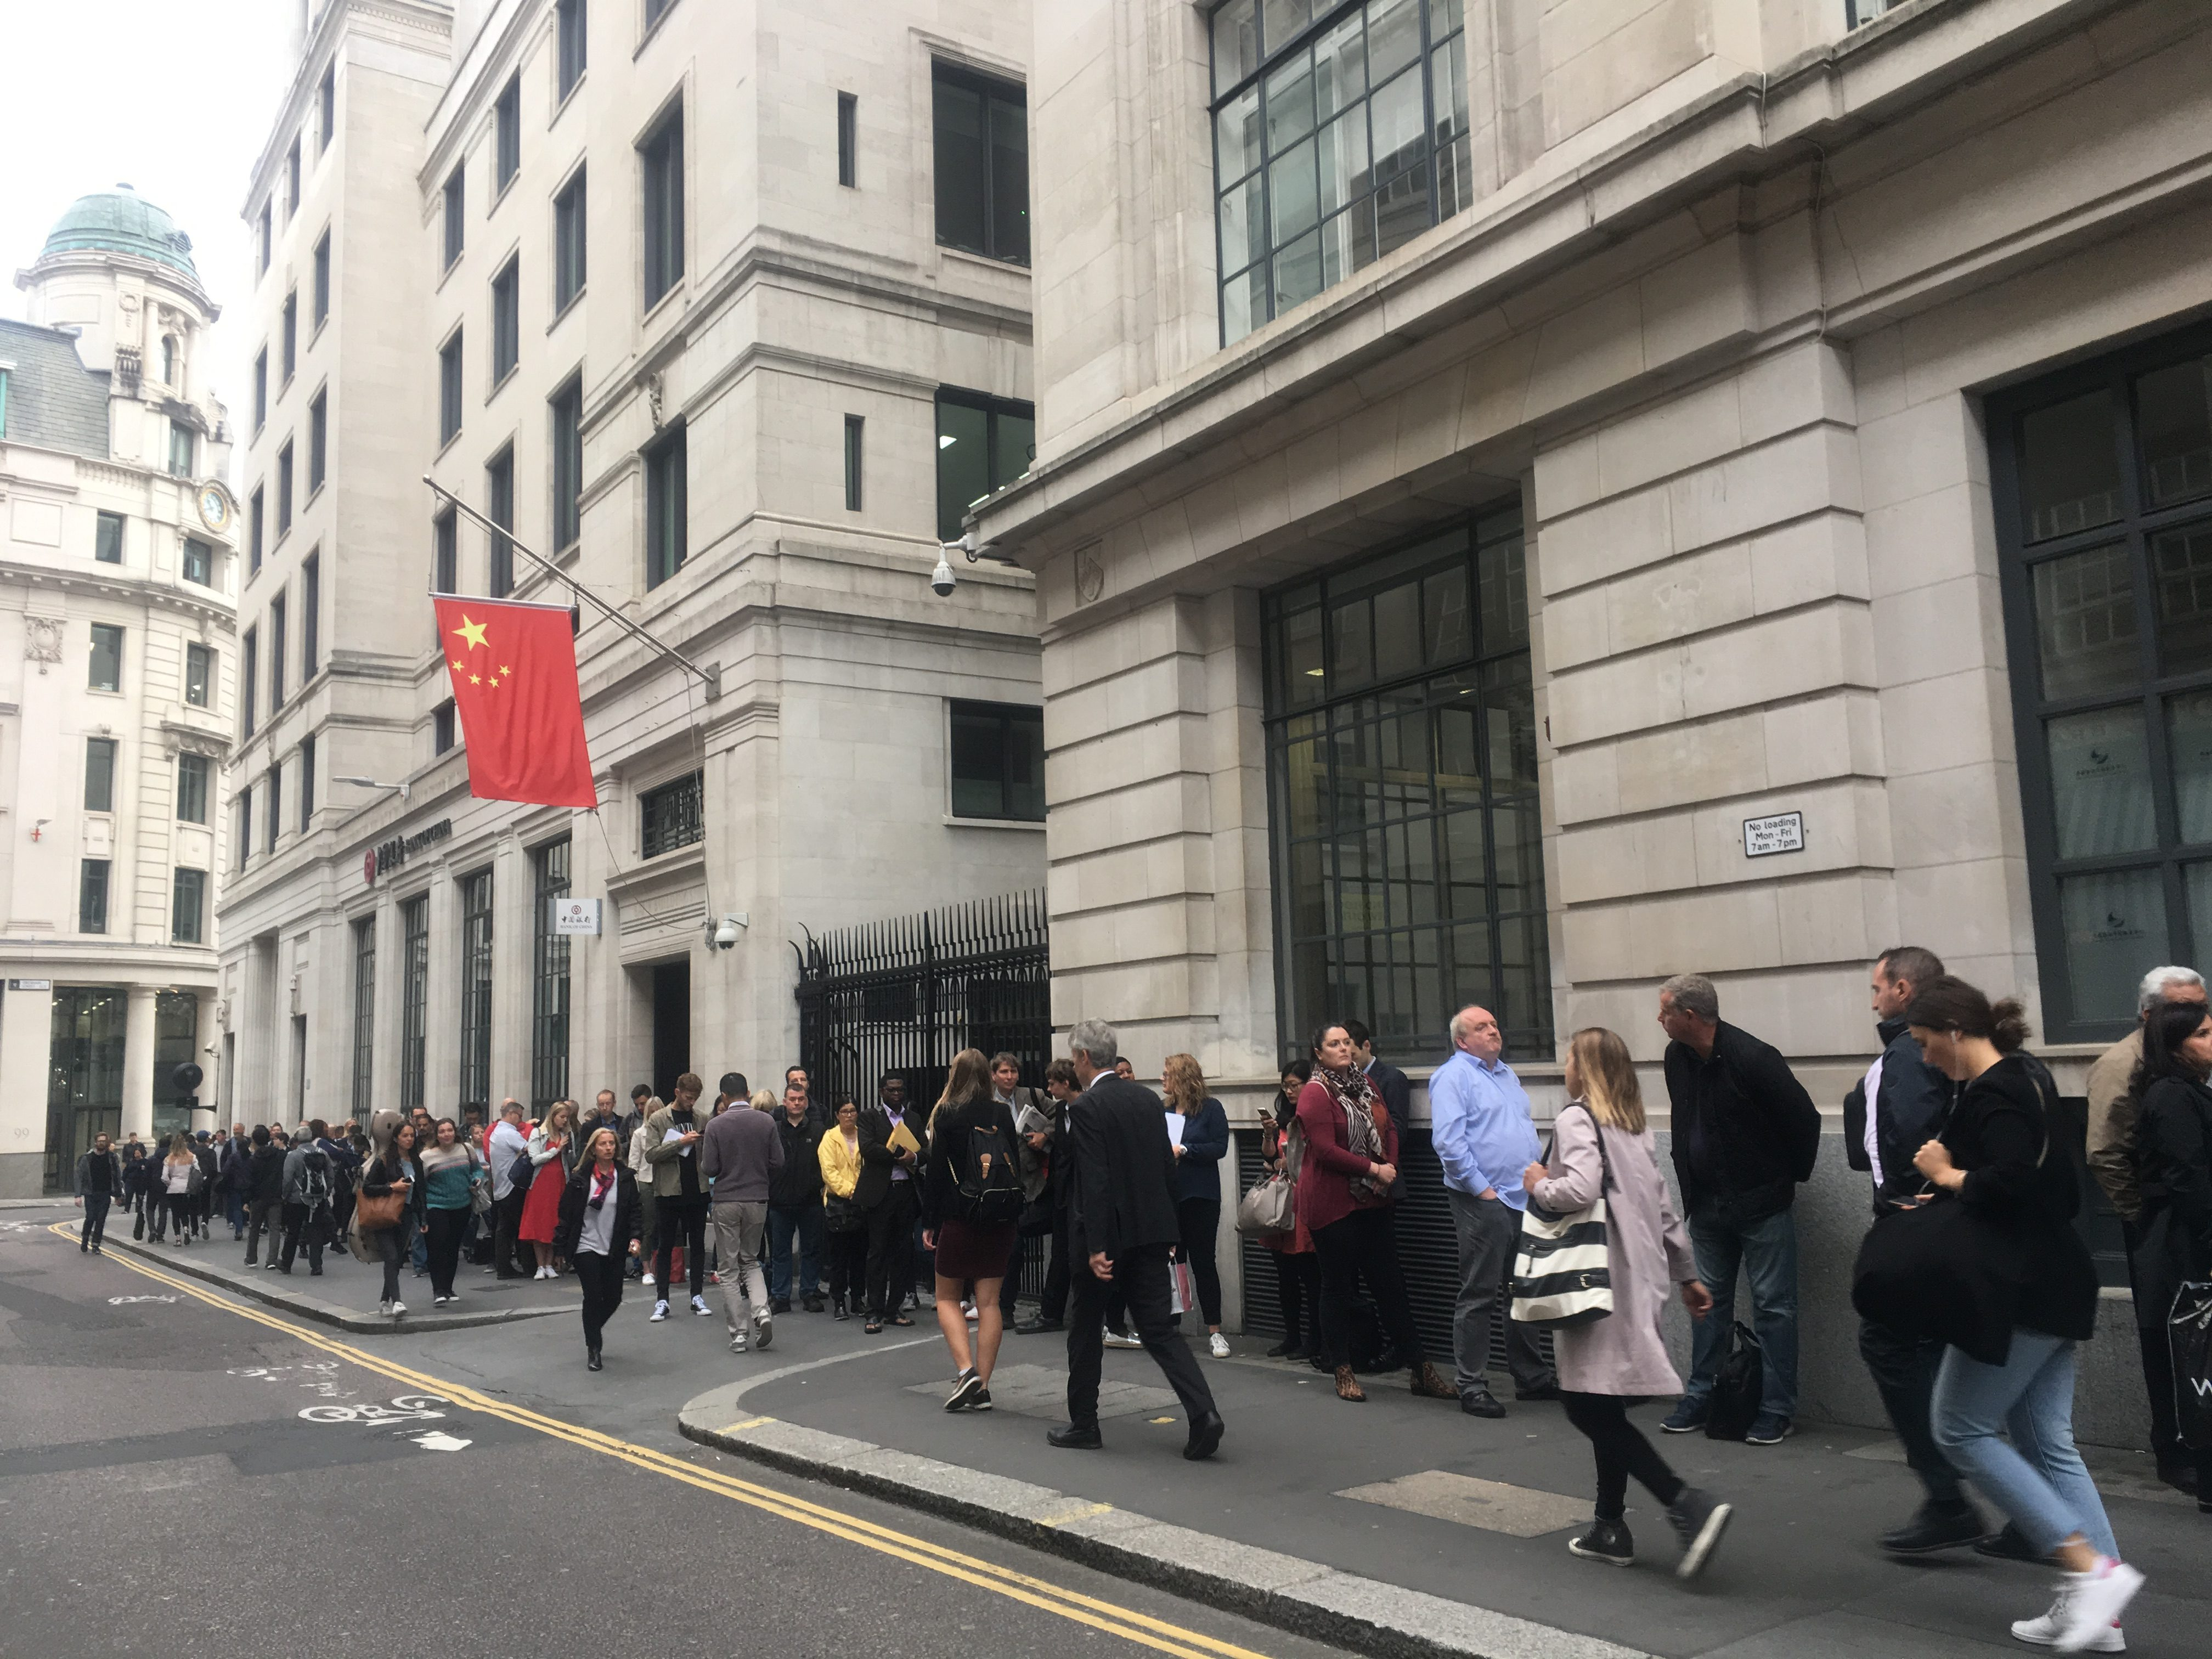 Better view of queue outside Chinese Visa Application Service